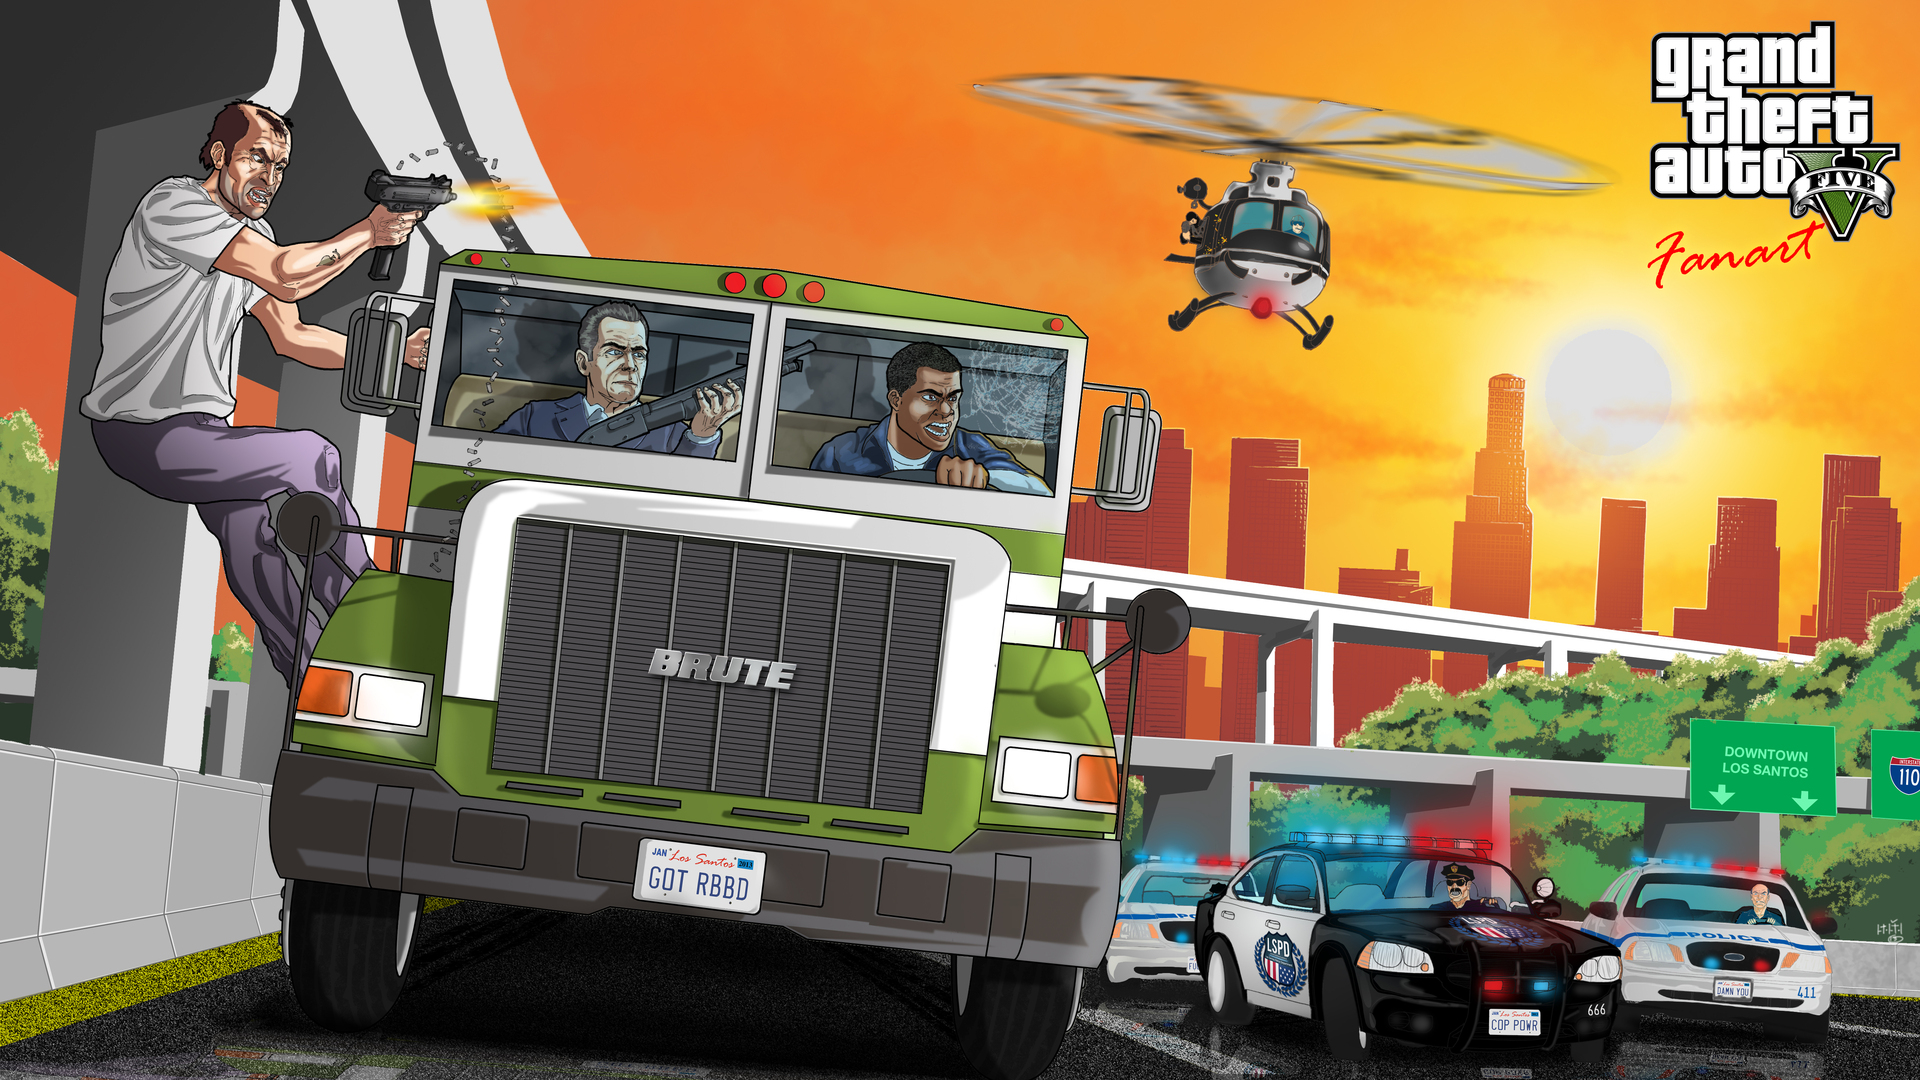 1920x1080 Gta 5 Fanart Laptop Full Hd 1080p Hd 4k Wallpapers